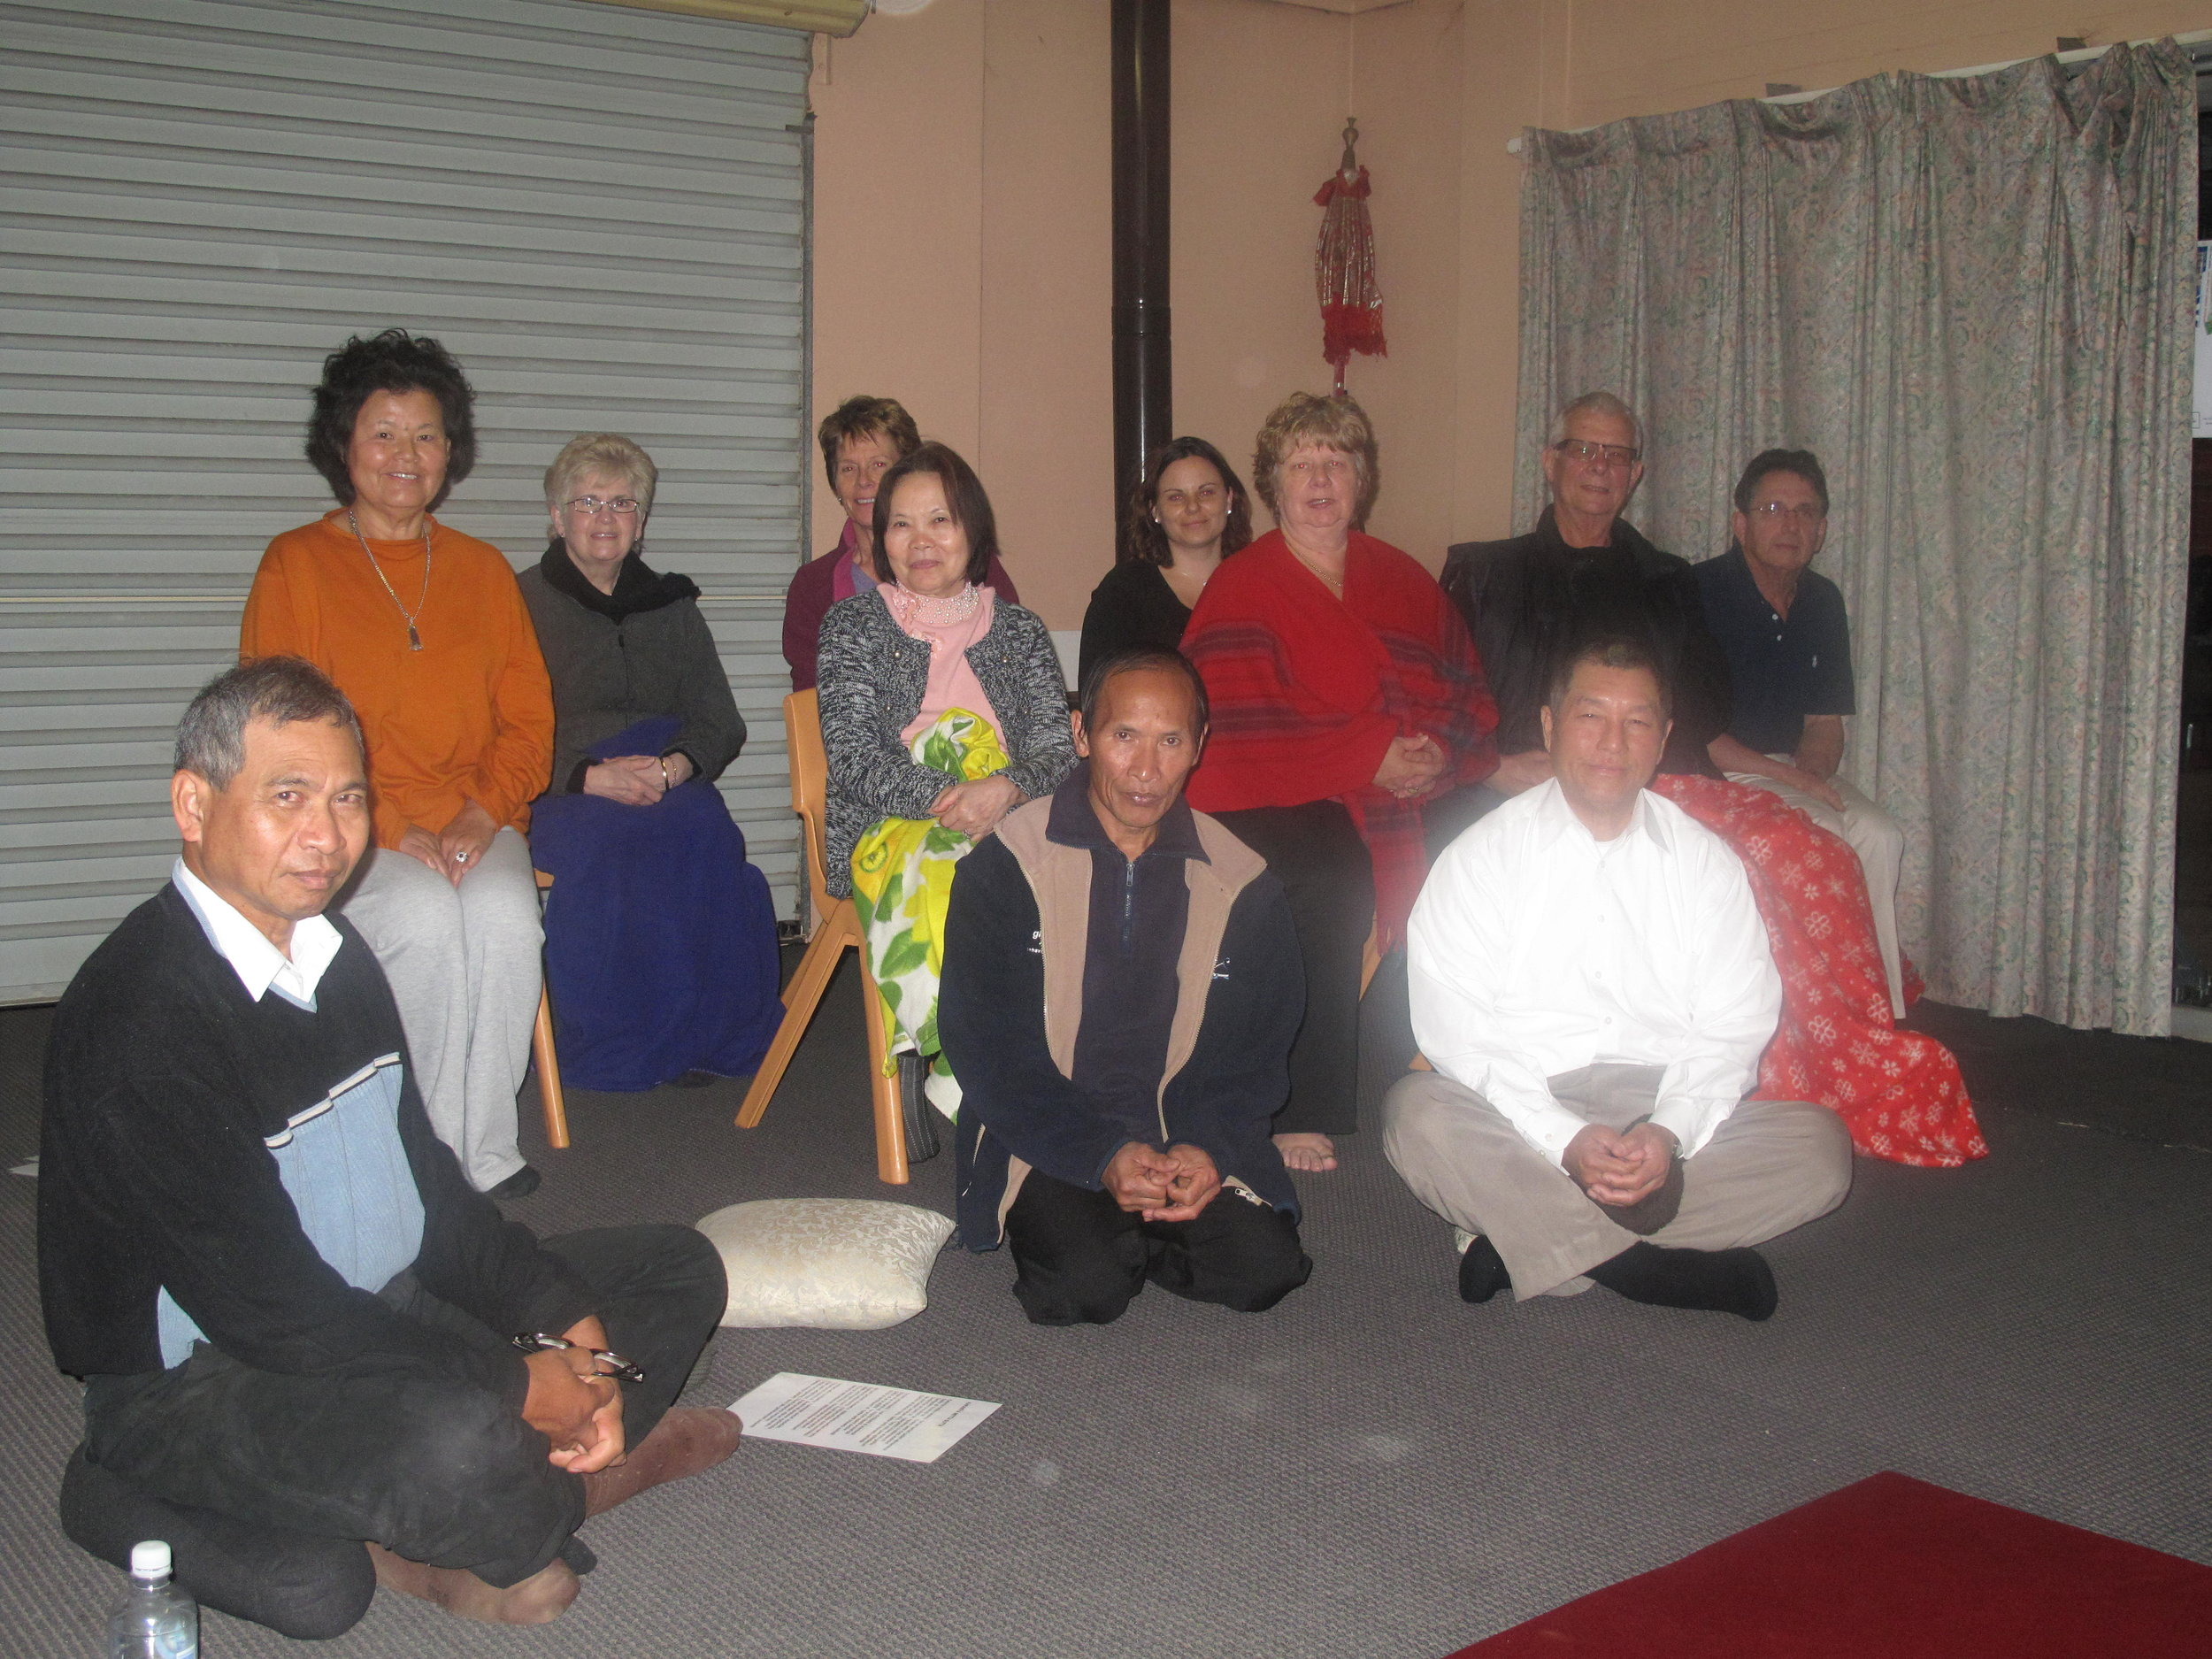 The Meditation group